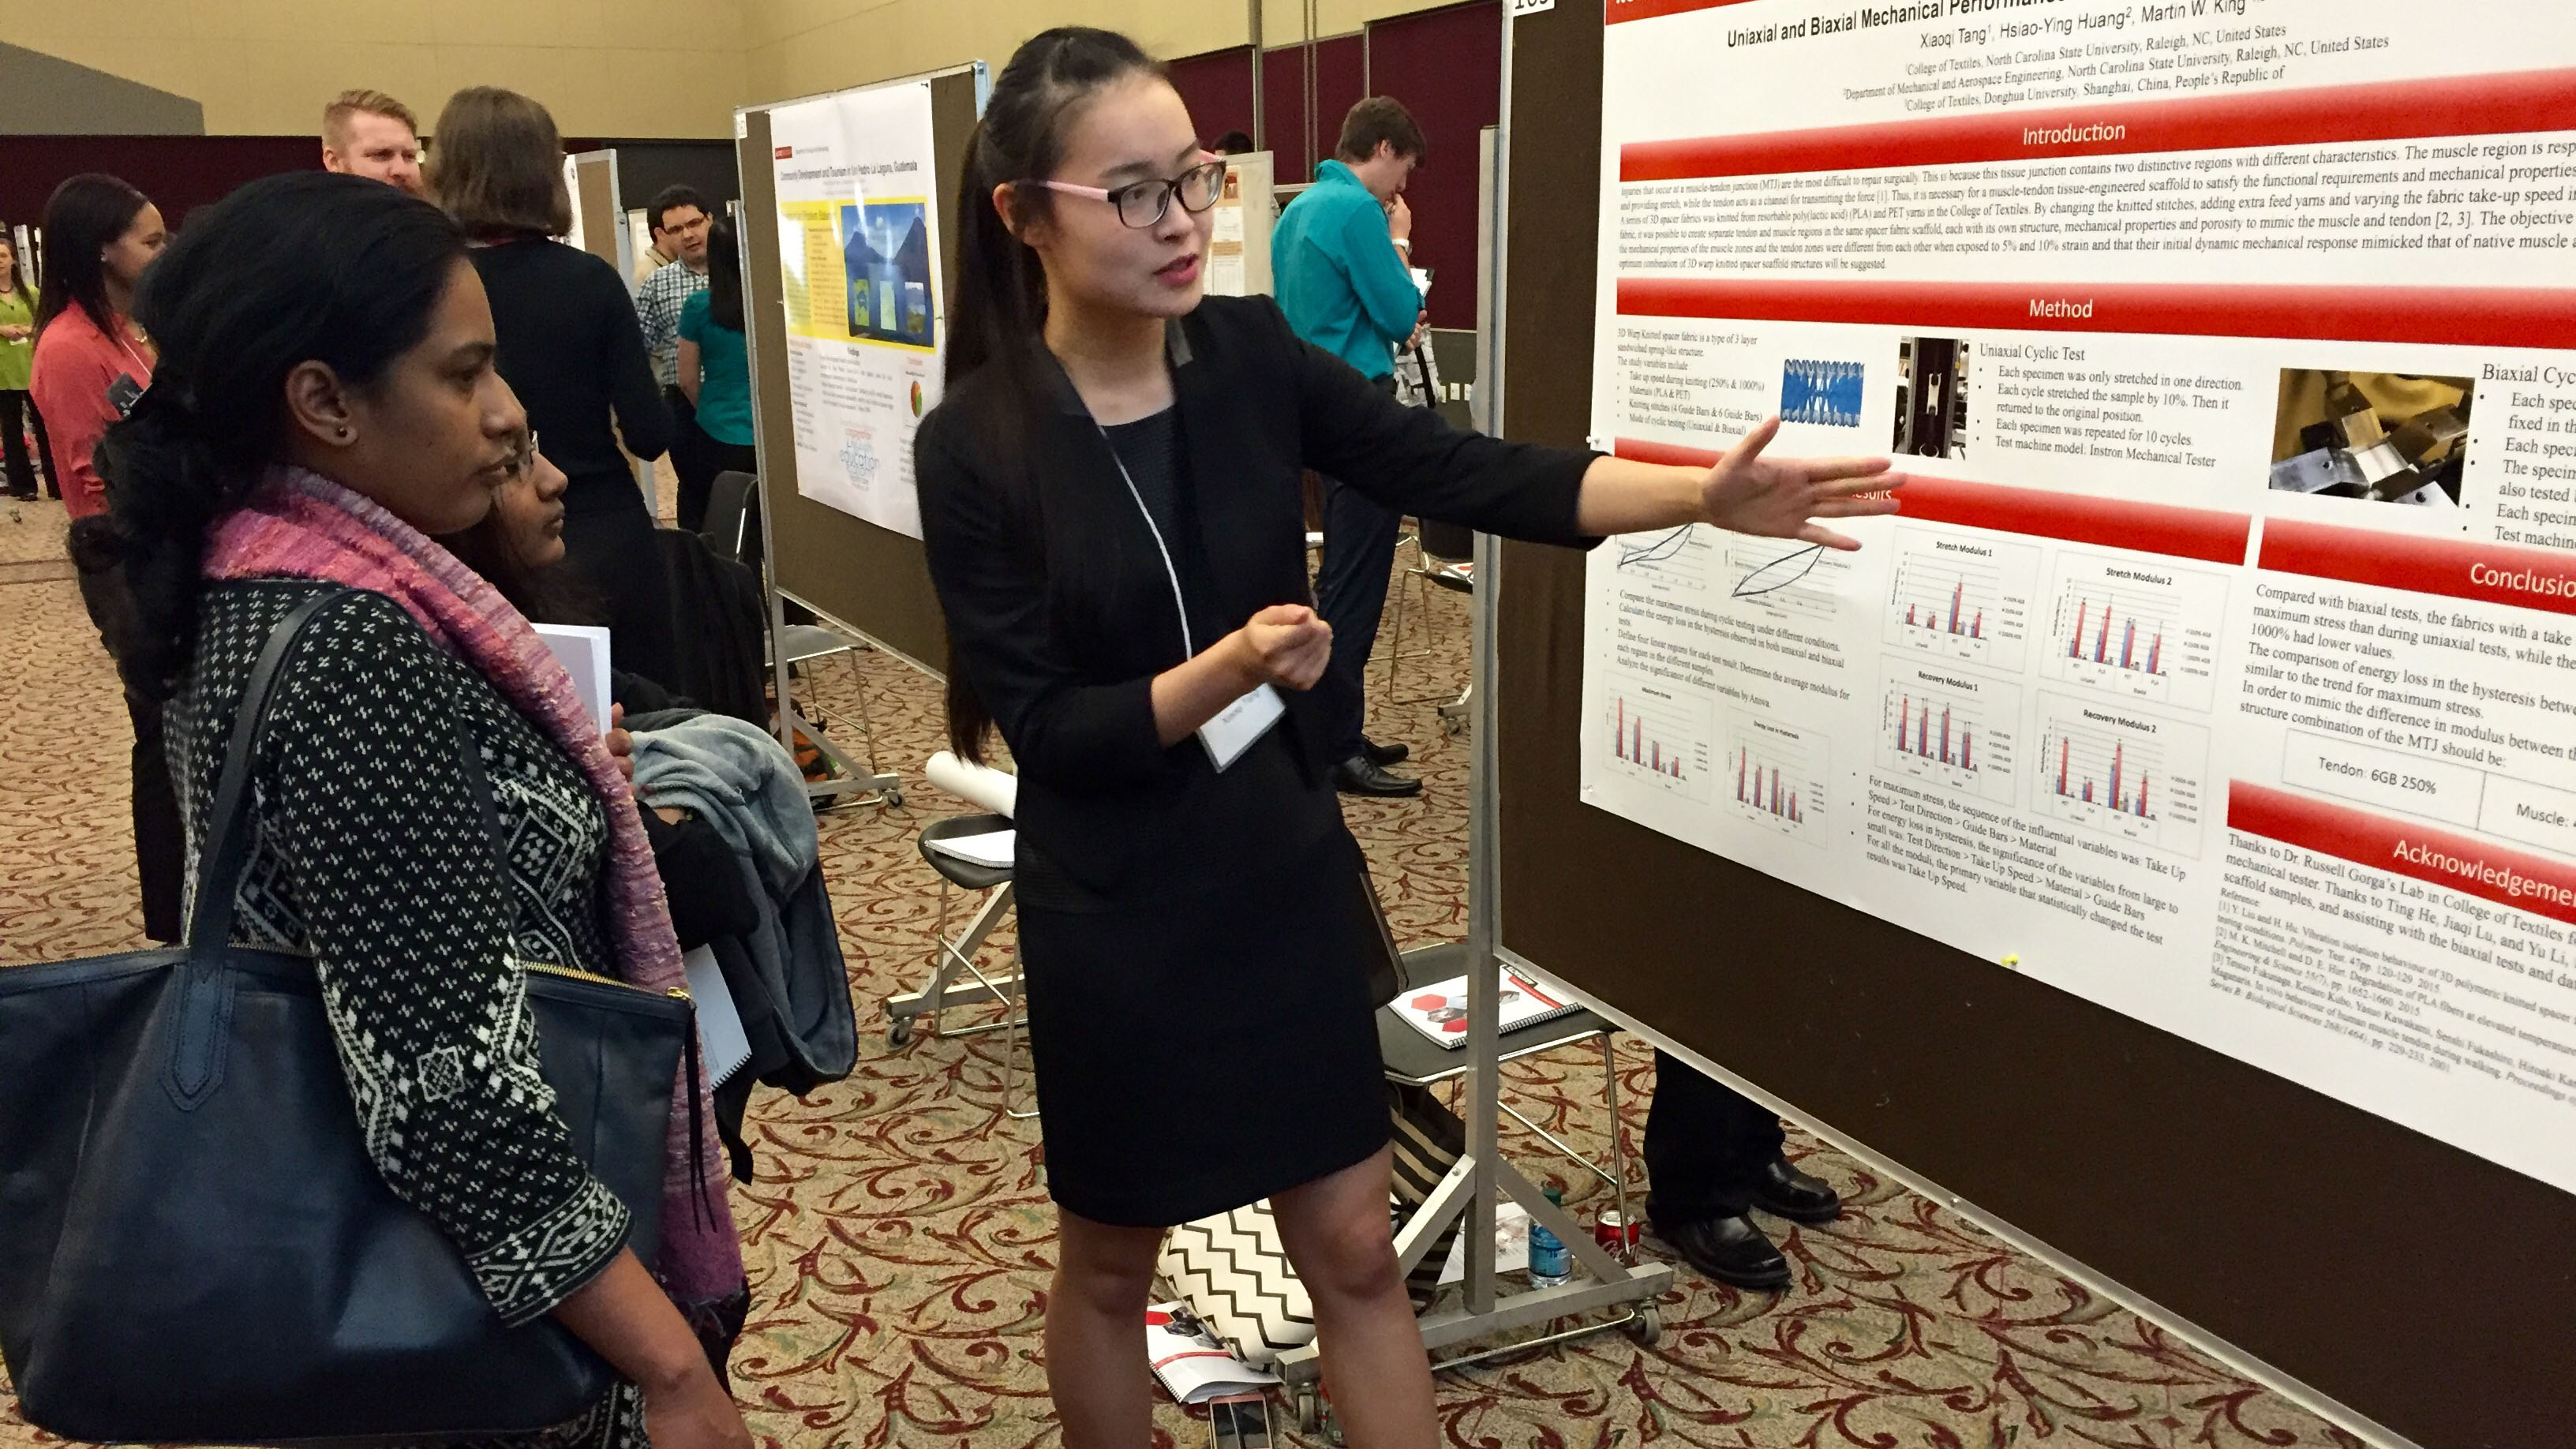 Xiaoqi Tang presents her poster at the 2016 Graduate Student Research Symposium